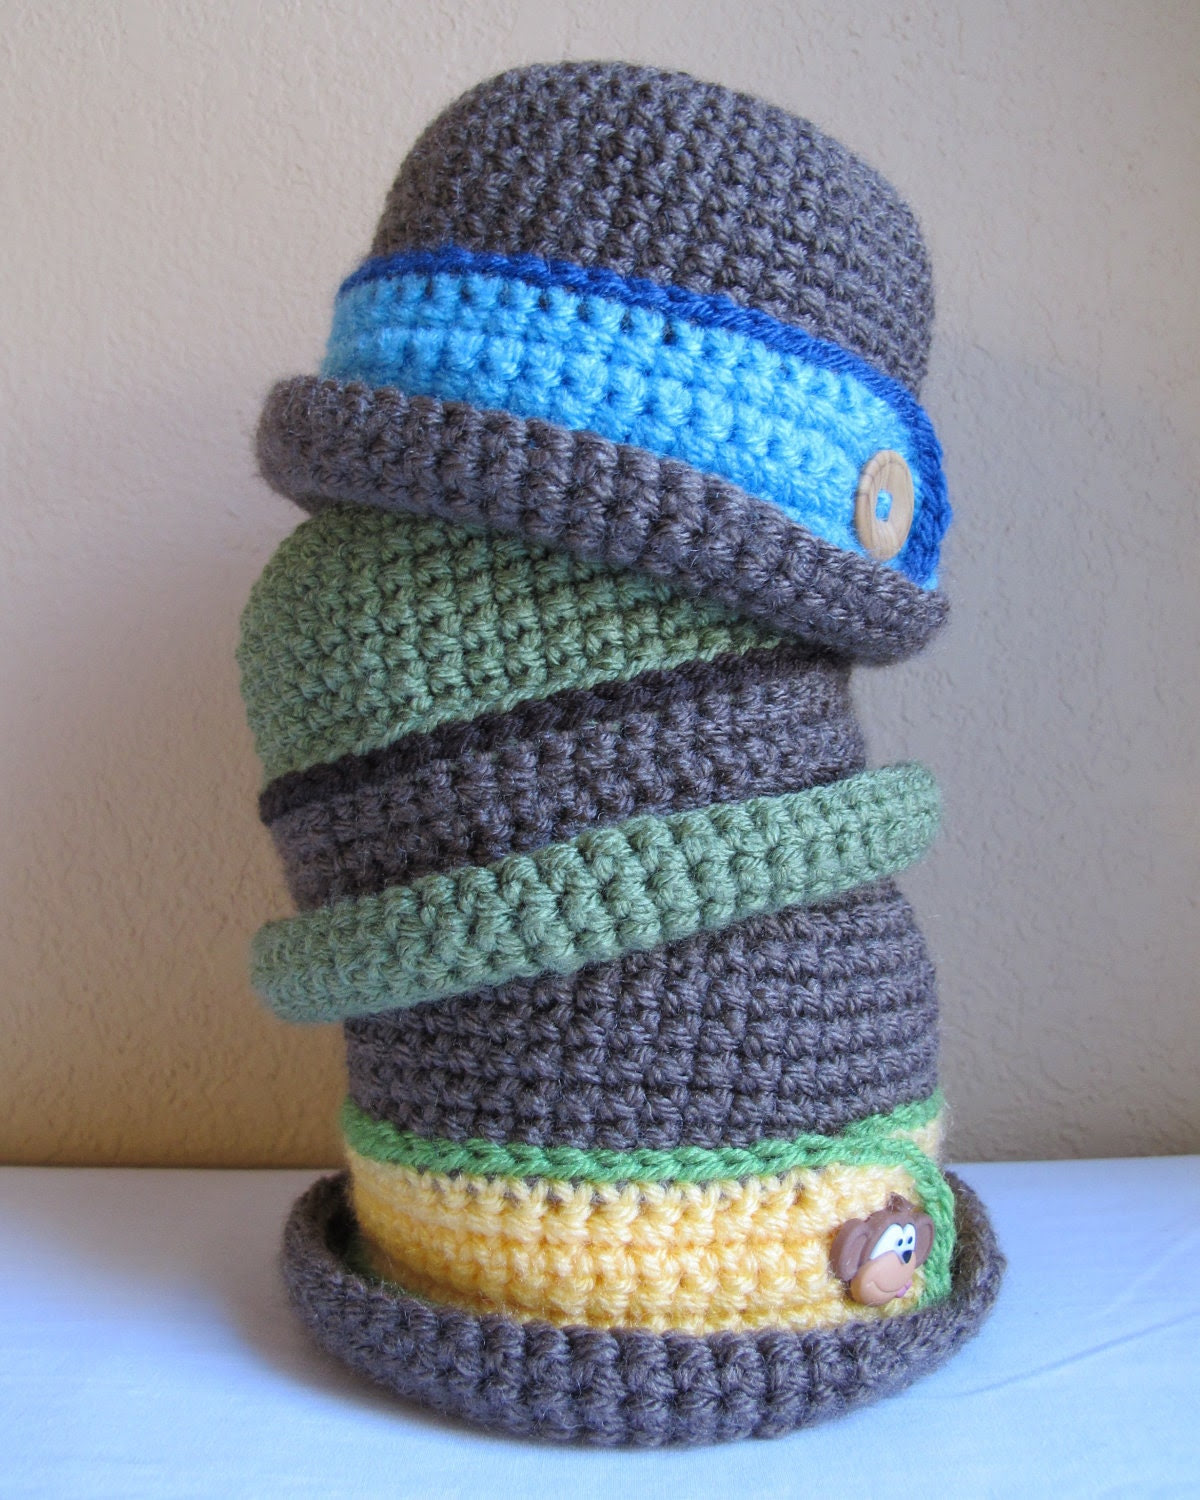 CROCHET PATTERN - Downtown Boy - a beanie/bucket hat with button in 8 sizes (Infant - Adult L)